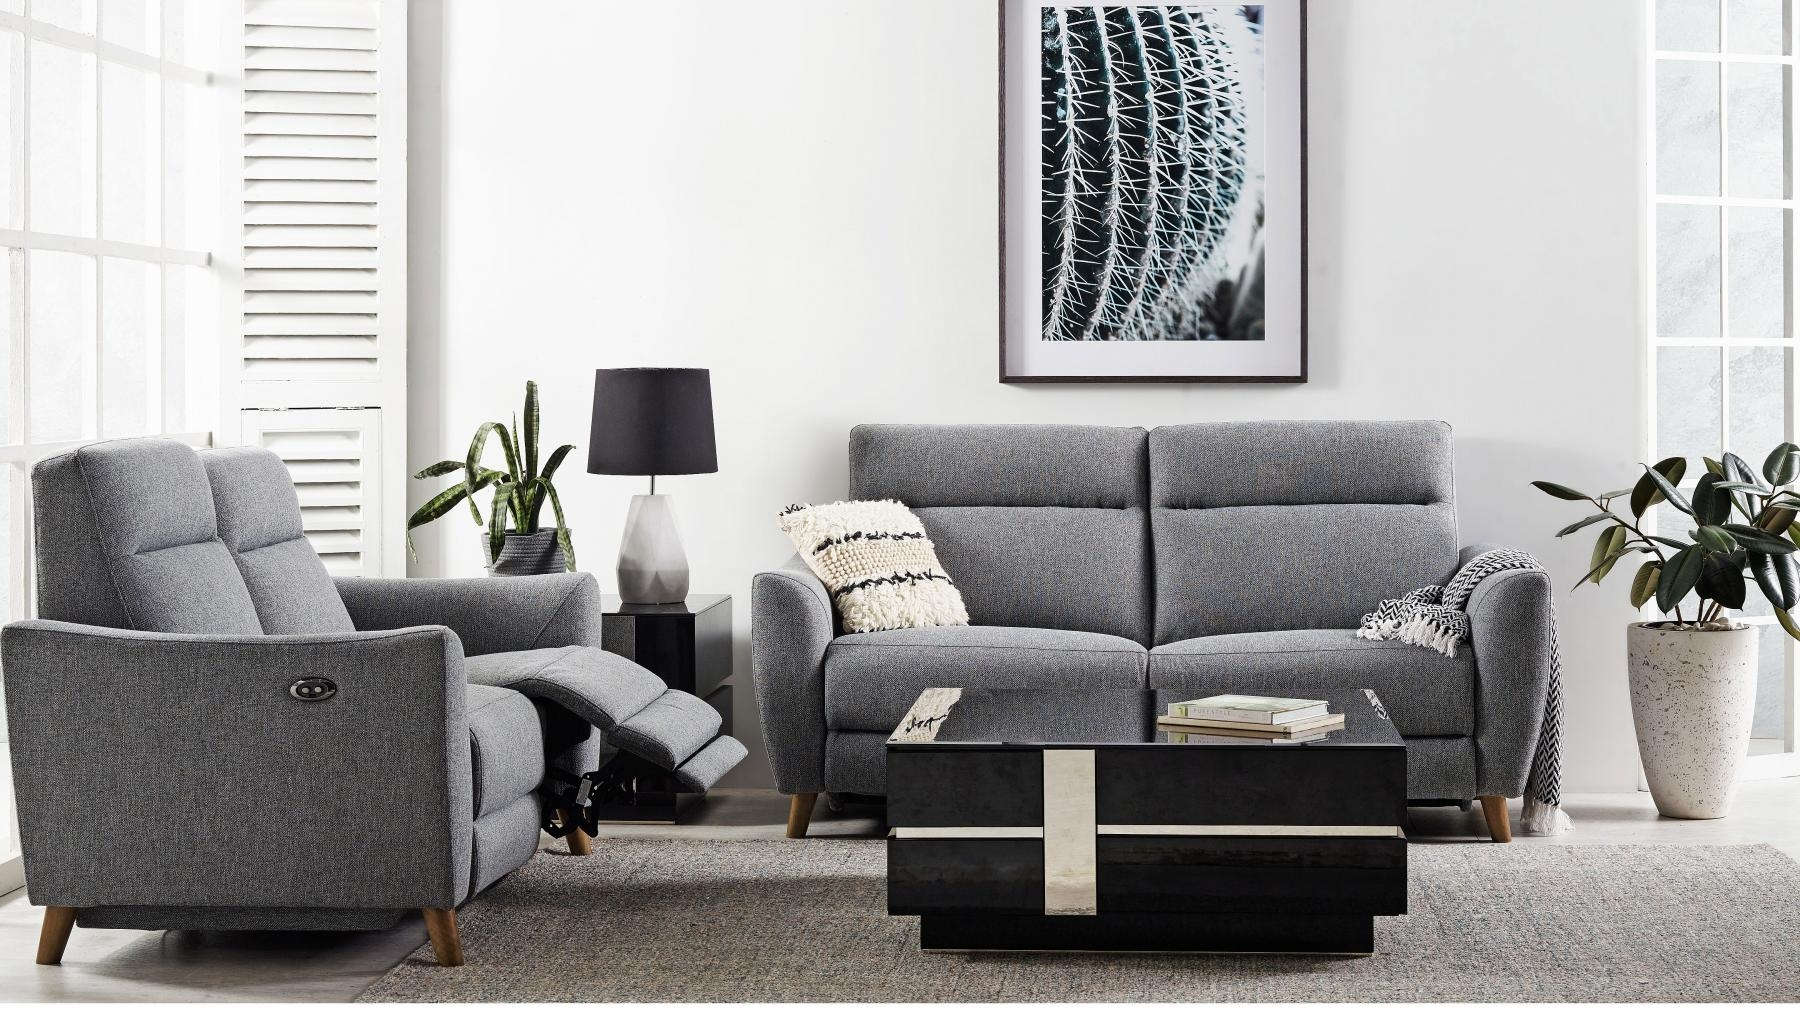 Buy angie 2 5 seater powered fabric recliner sofa harvey norman au